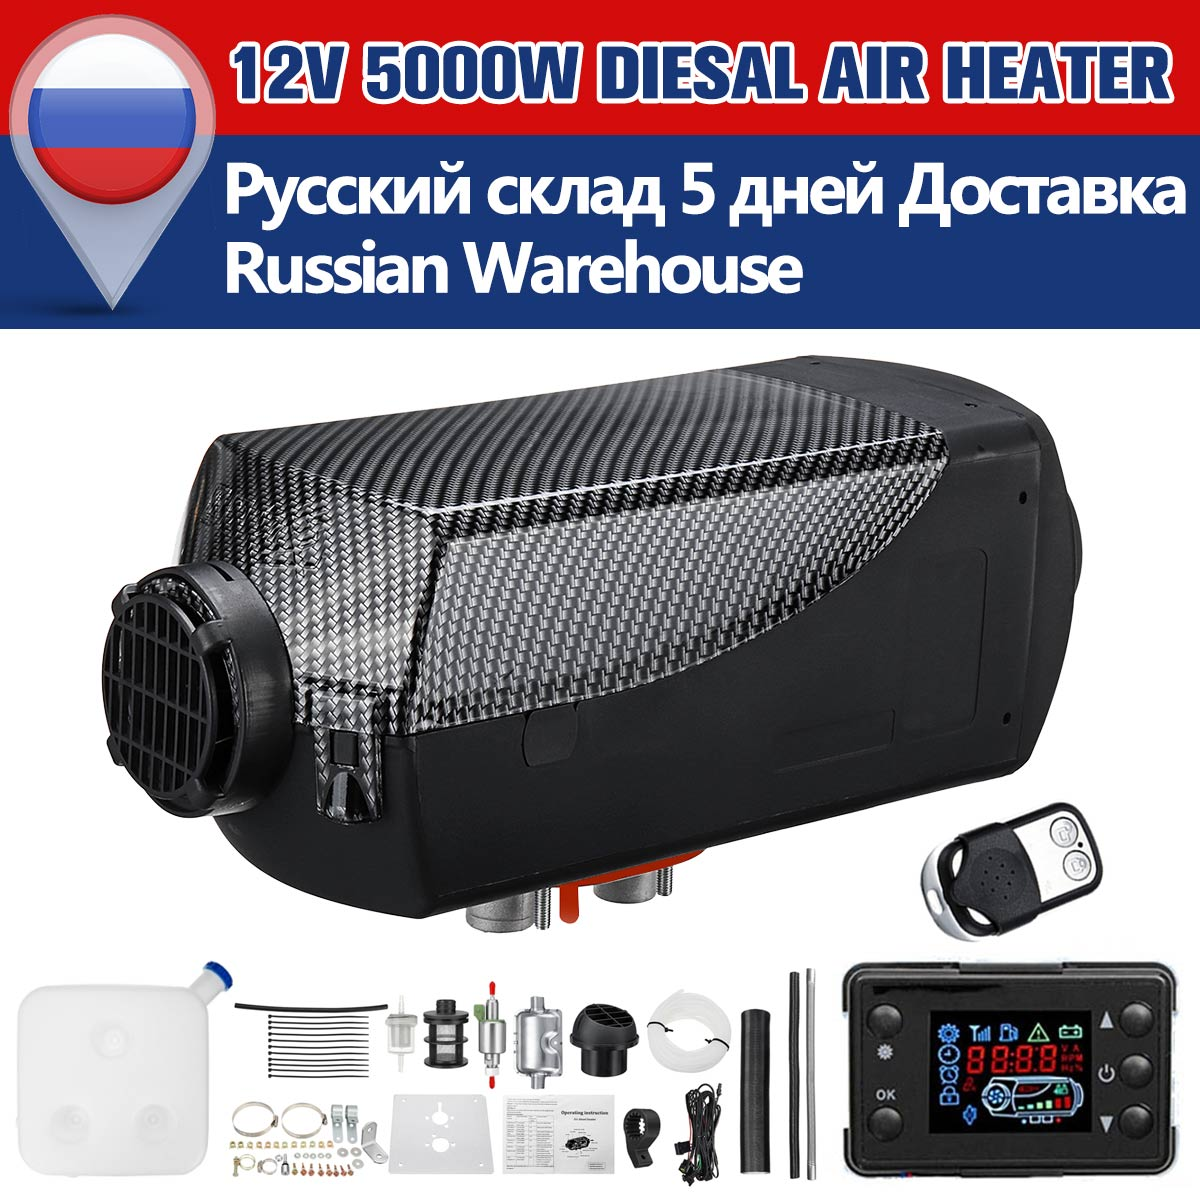 5KW 12V 5000W Air Autonomous Diesel Heater car heater Parking Heat With Remote Control for RV Motorhome Trailer Trucks Boat Car